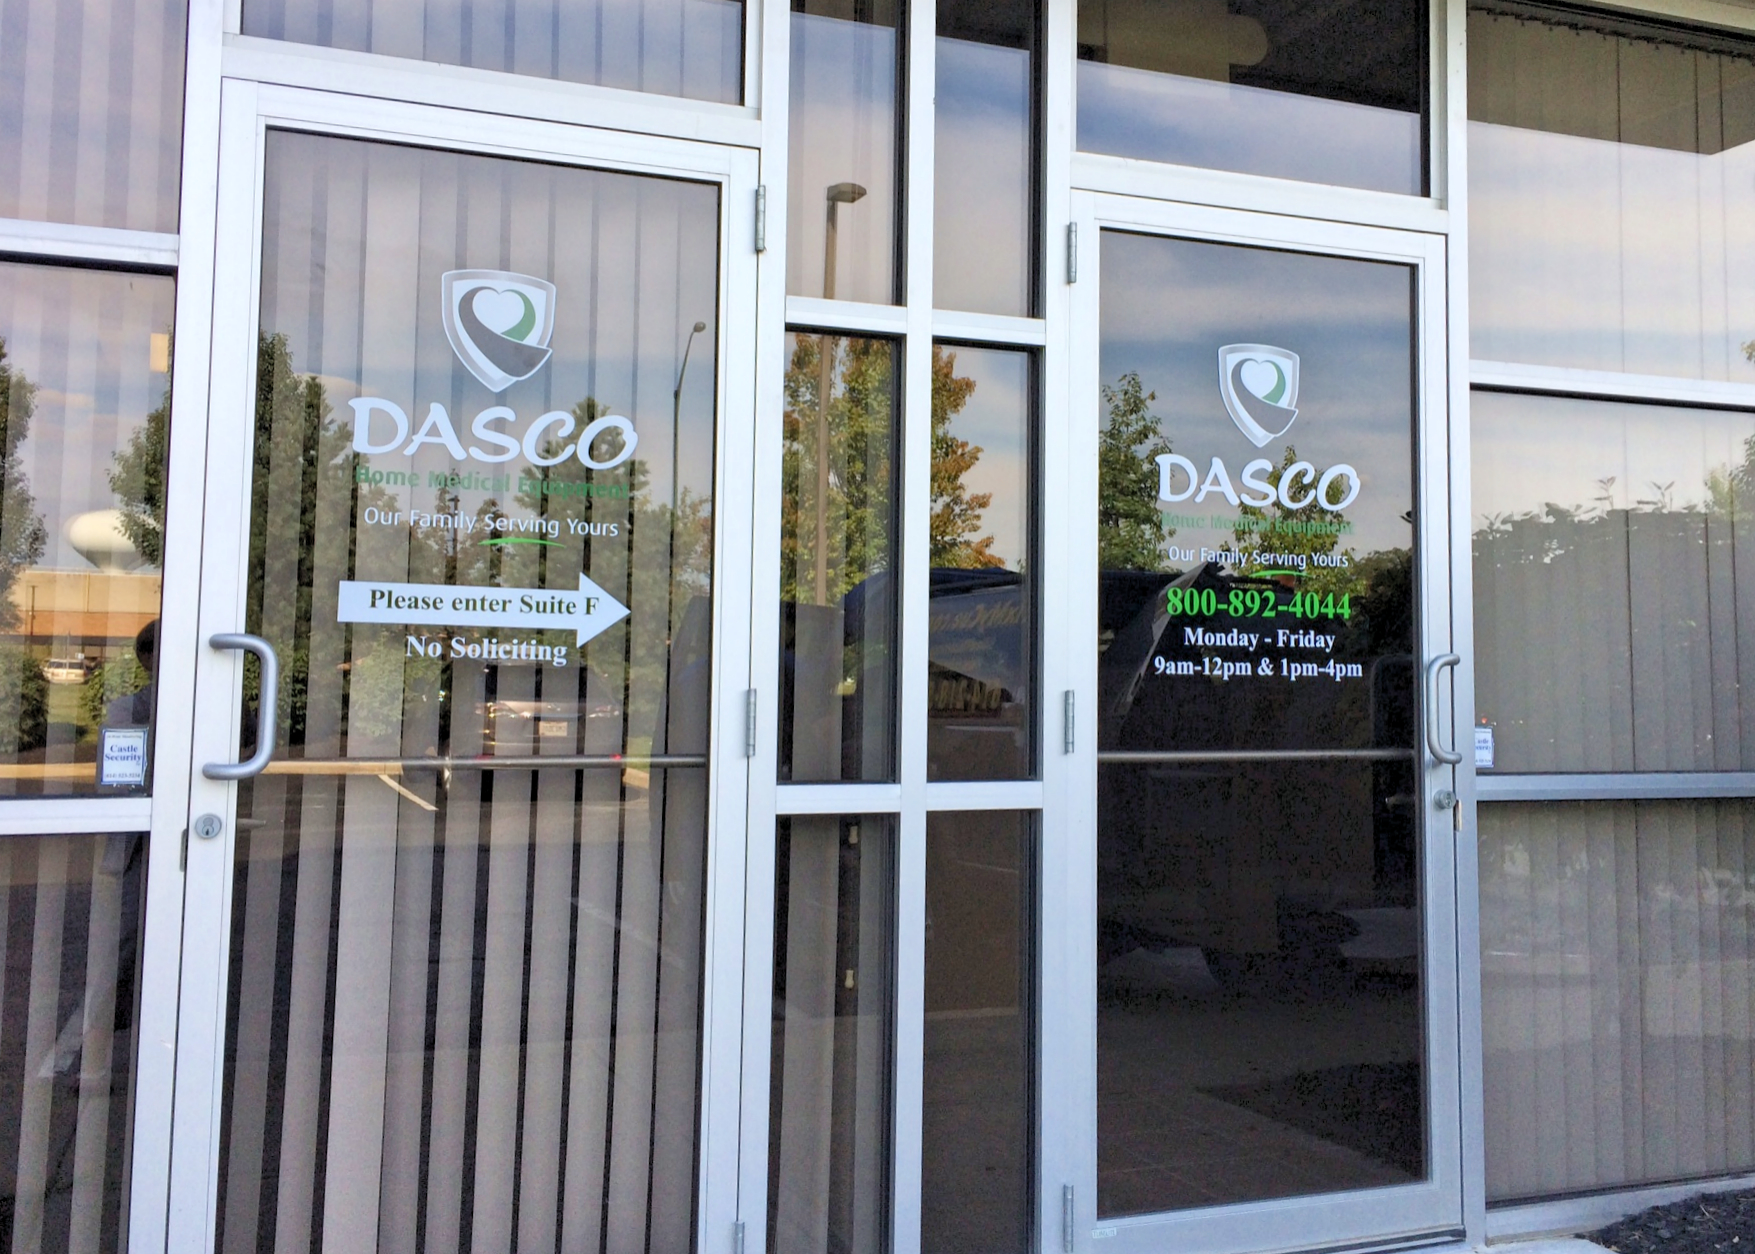 2015.09.01 Dasco Window Graphics.jpg